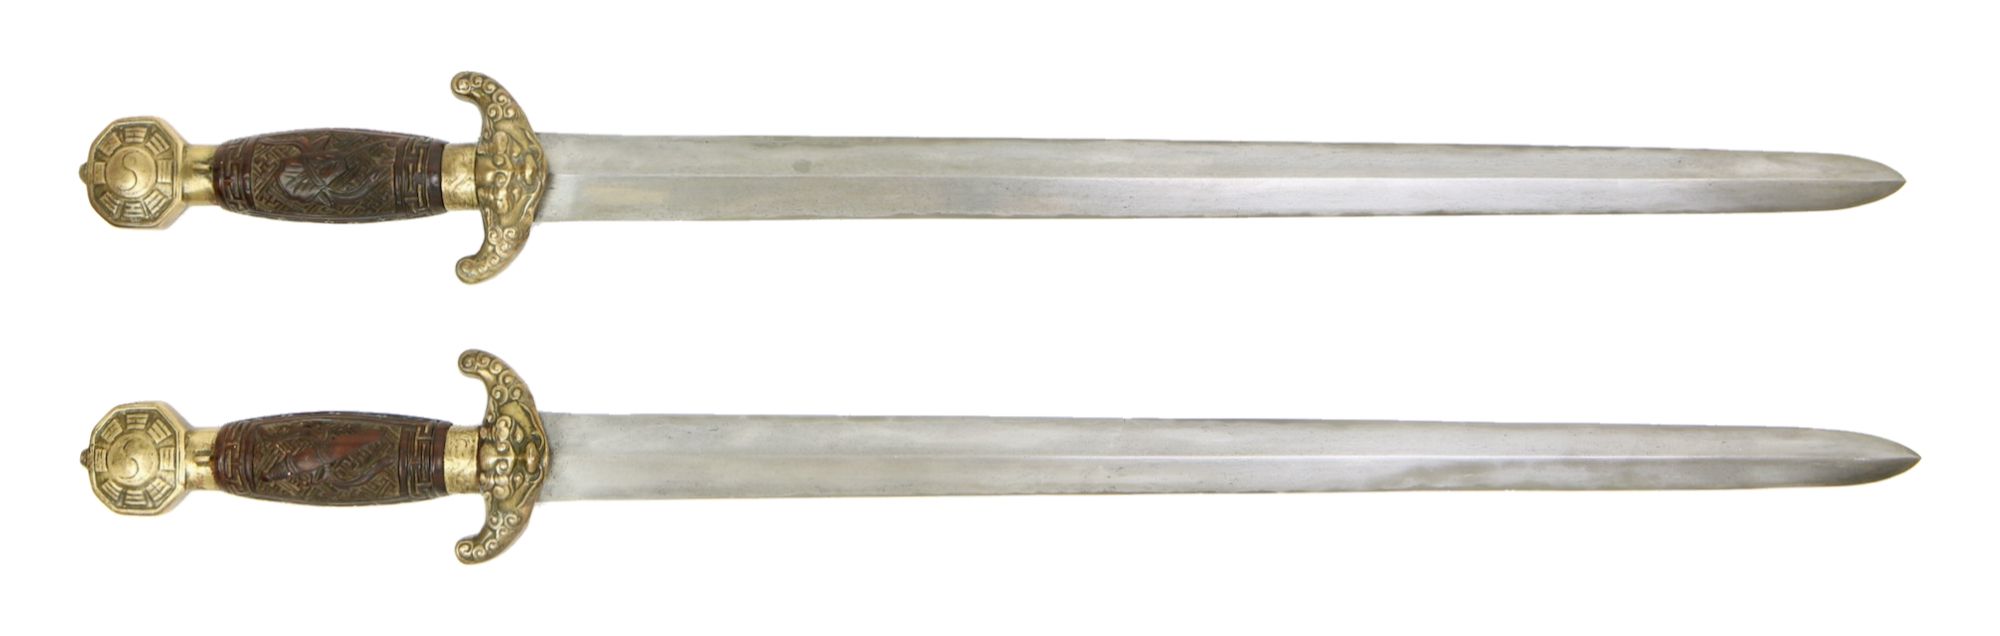 Antique Chinese double swords. Guangzhou, 1830 - 40's